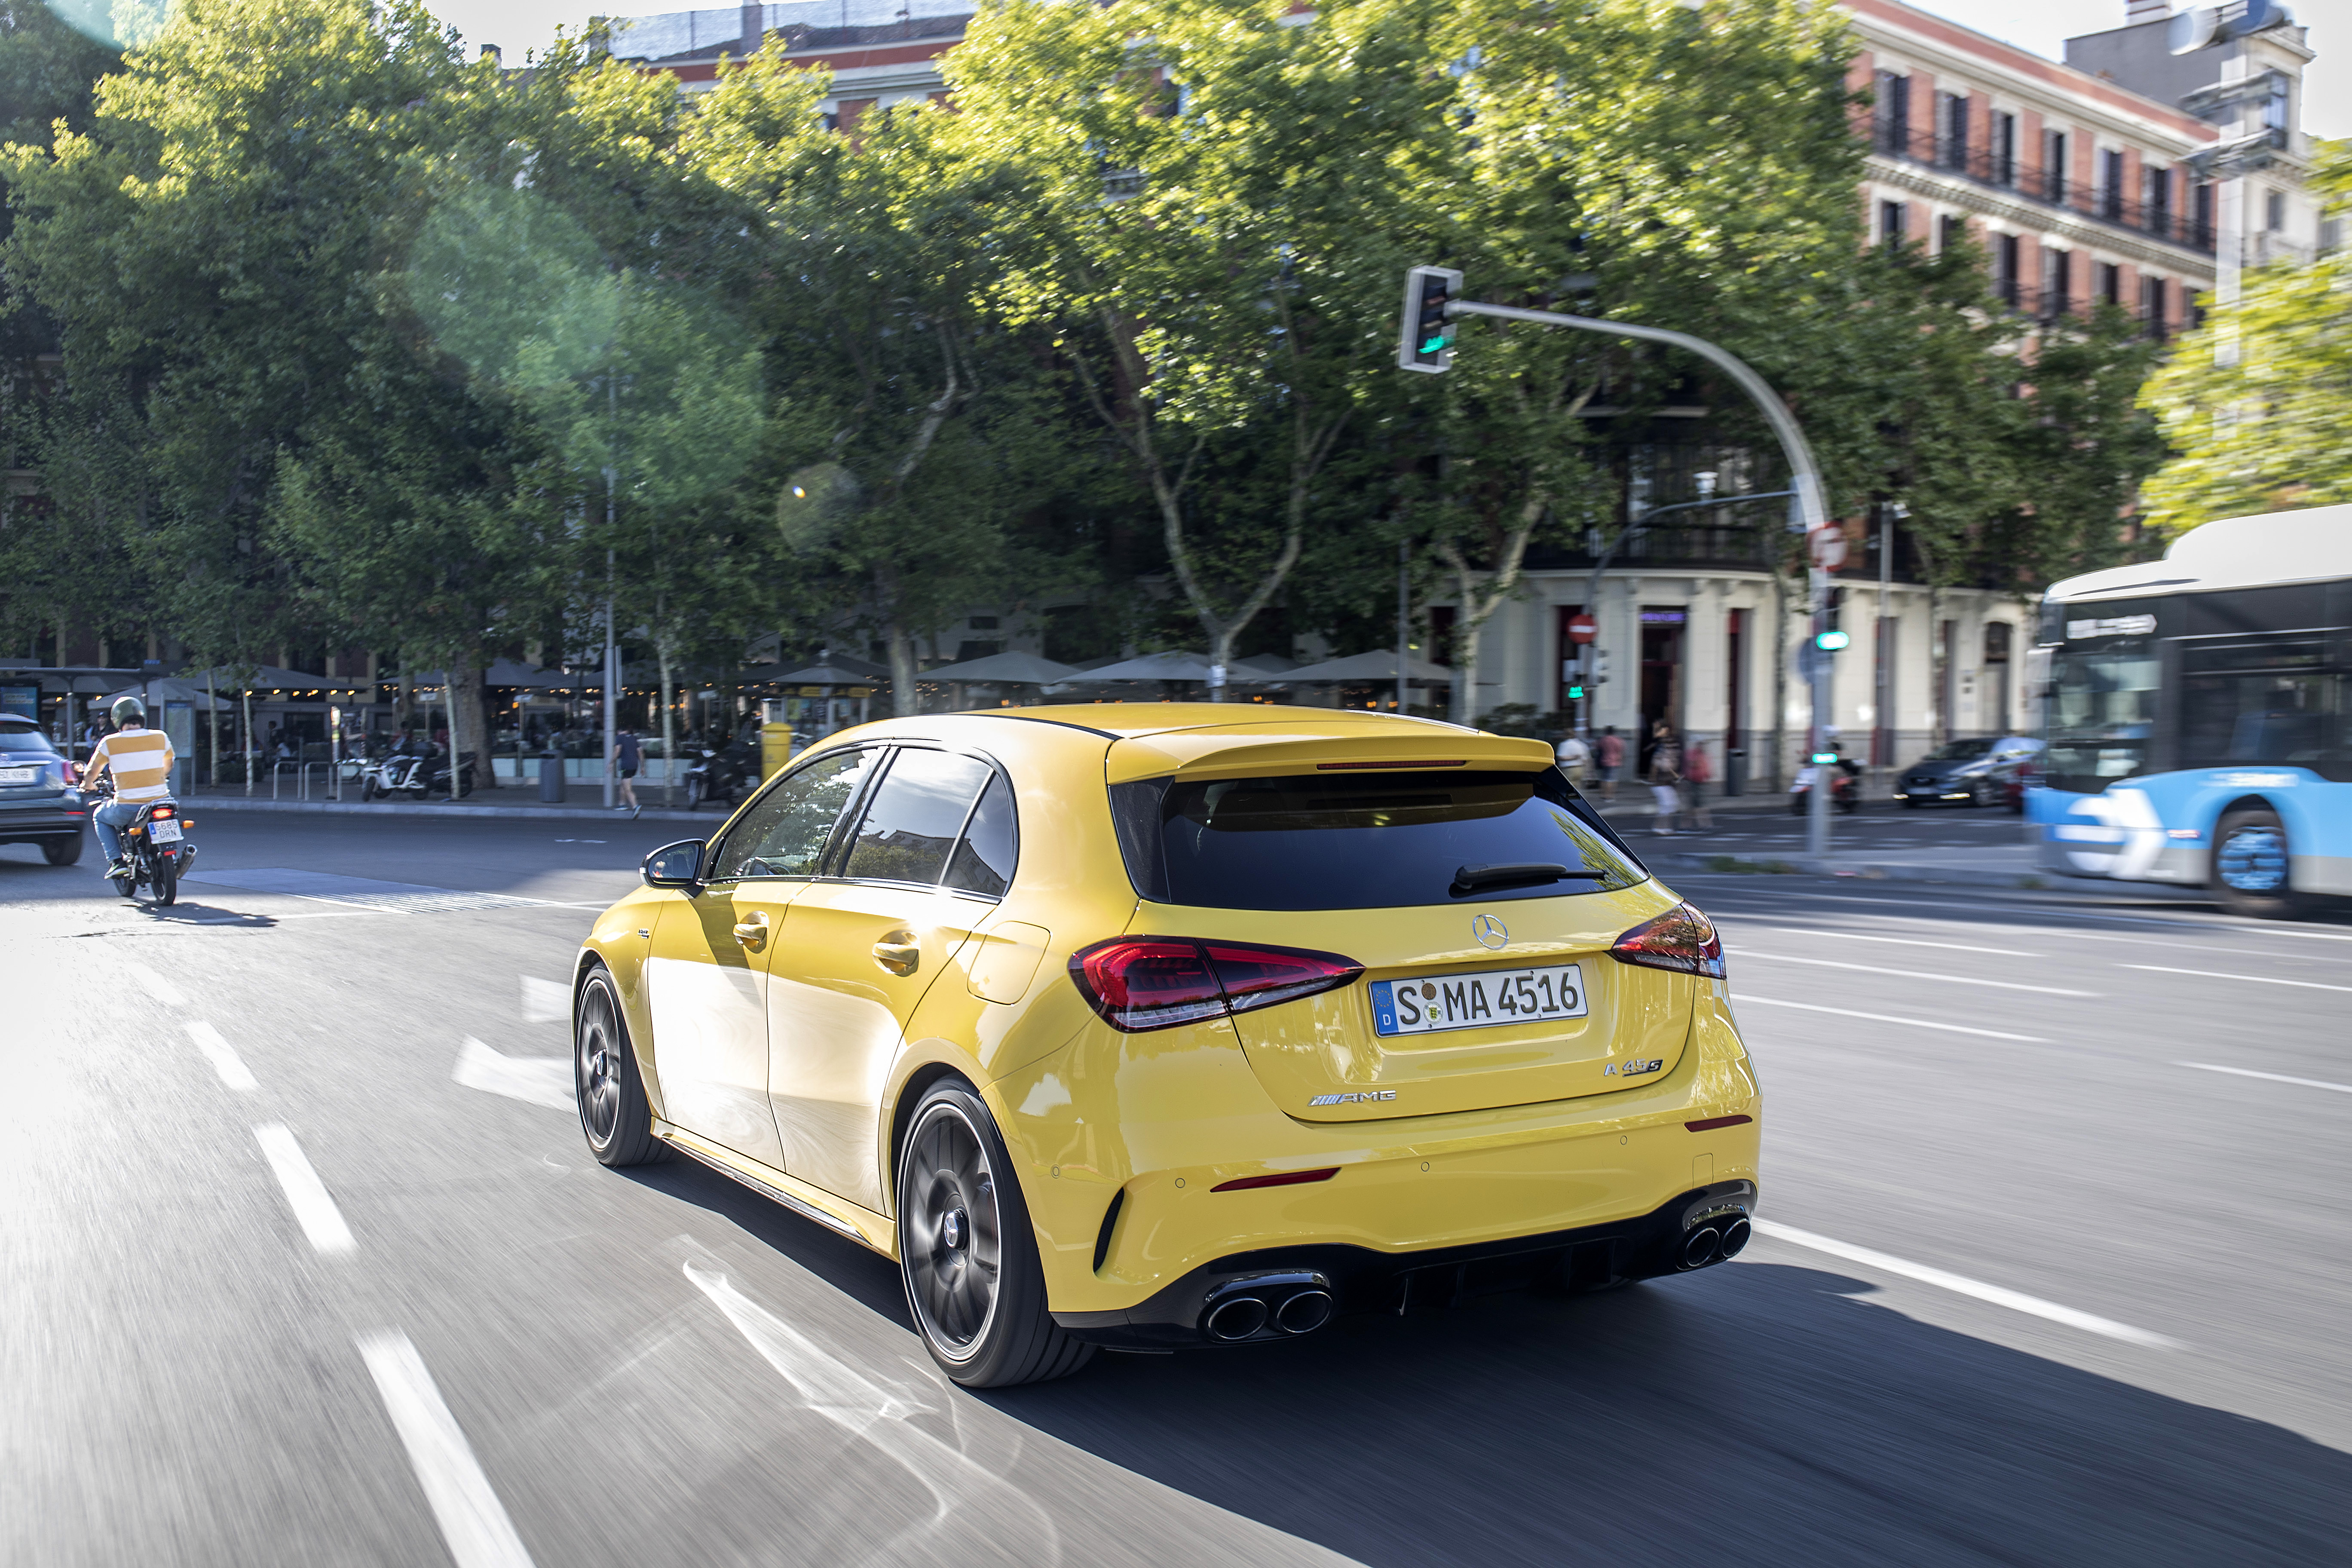 Compact proportions mean the A 45 doesn't feel unwieldy